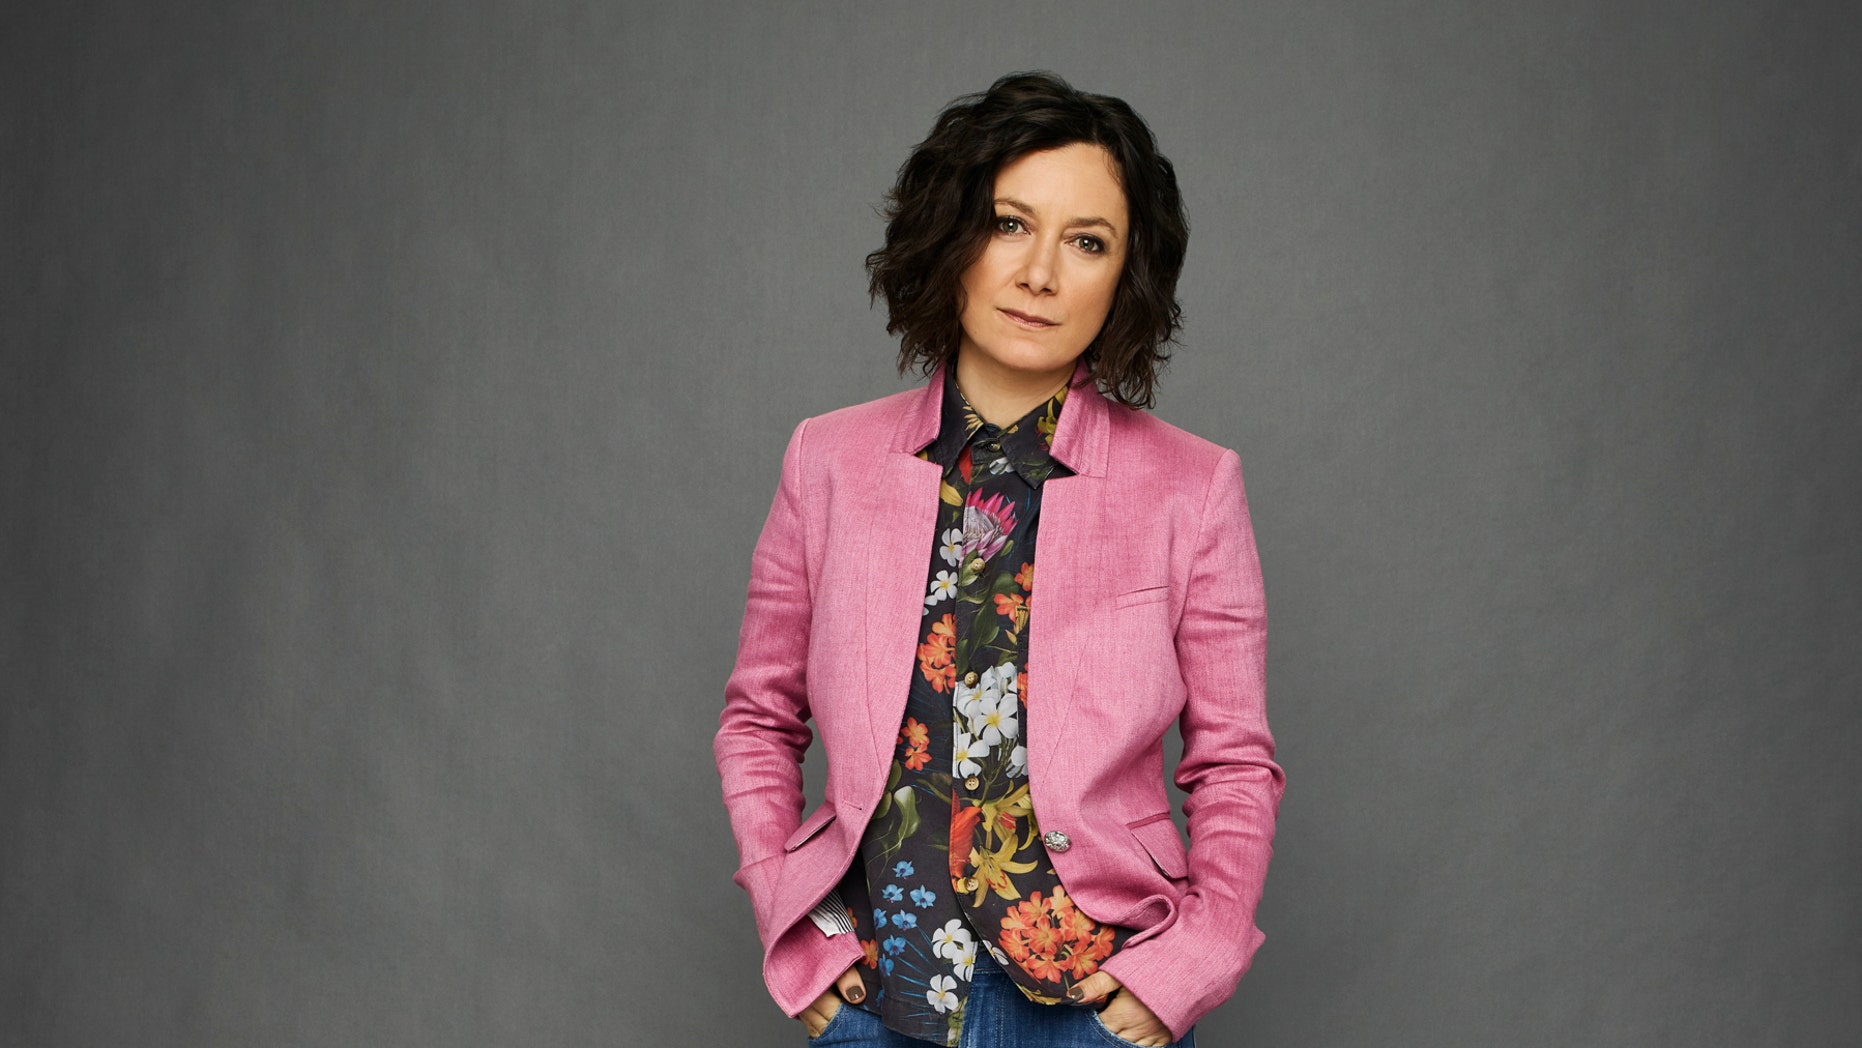 Sara Gilbert says she's leaving 'The Talk'